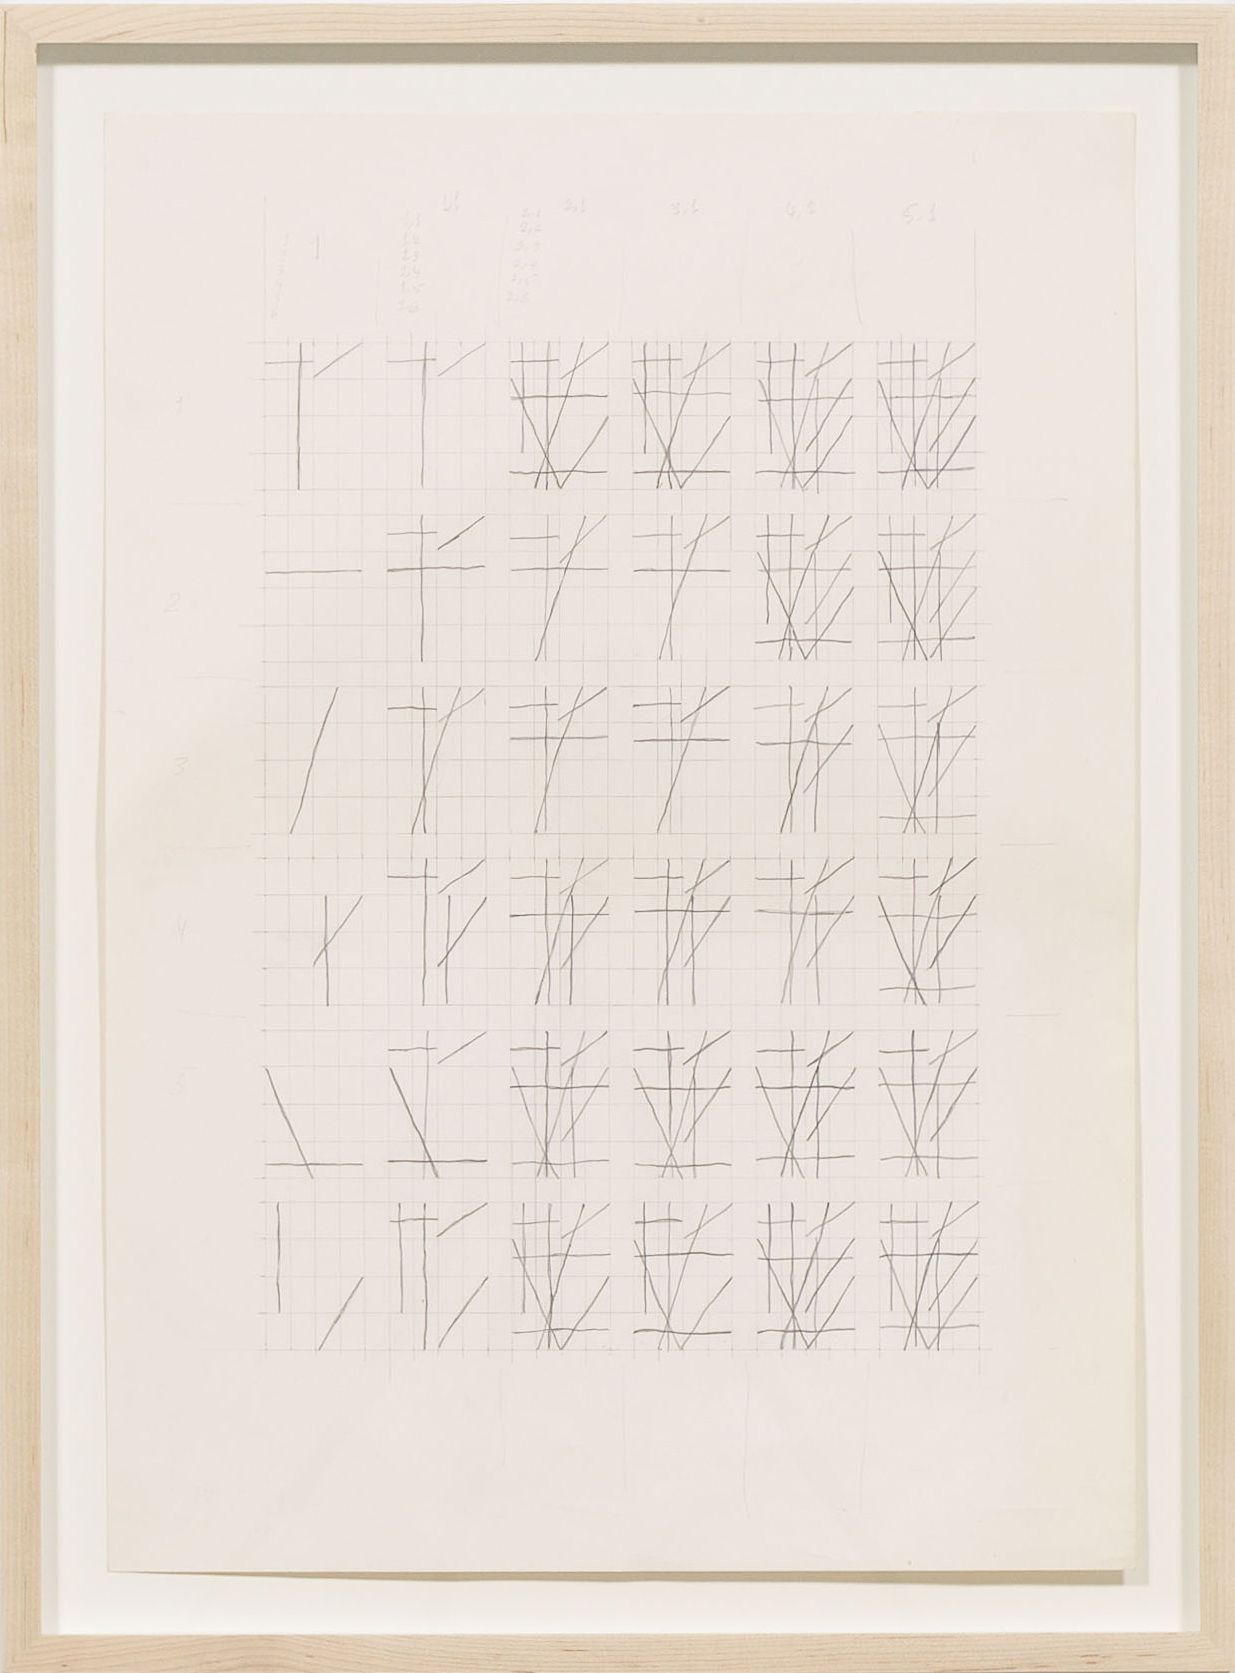 Lines, 2012, Pencil on paper